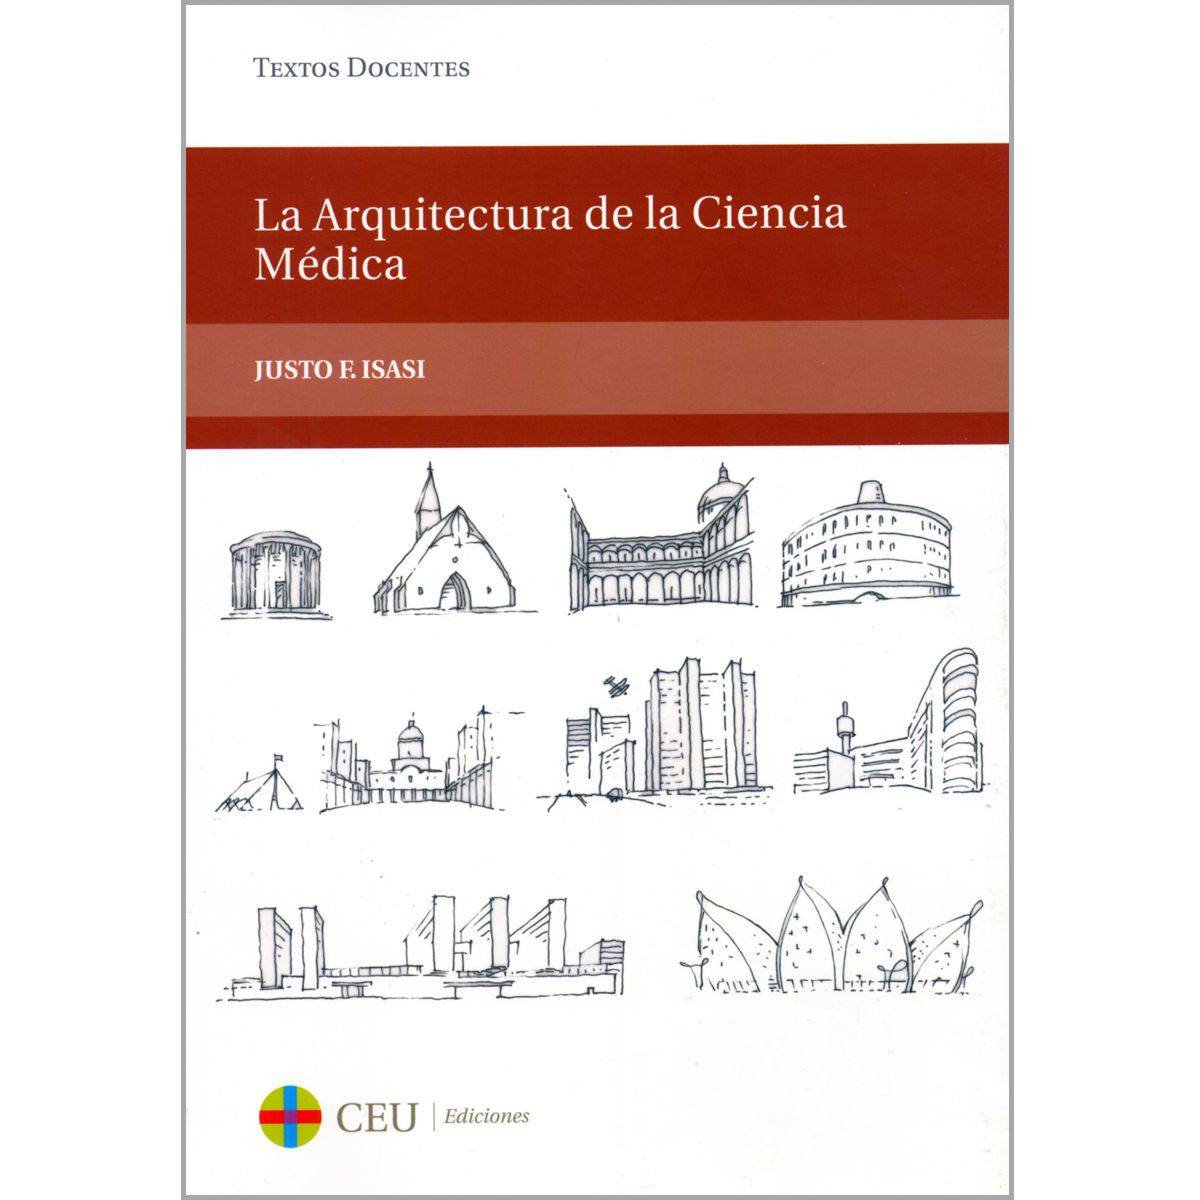 The Architecture of the Medical Knowledge